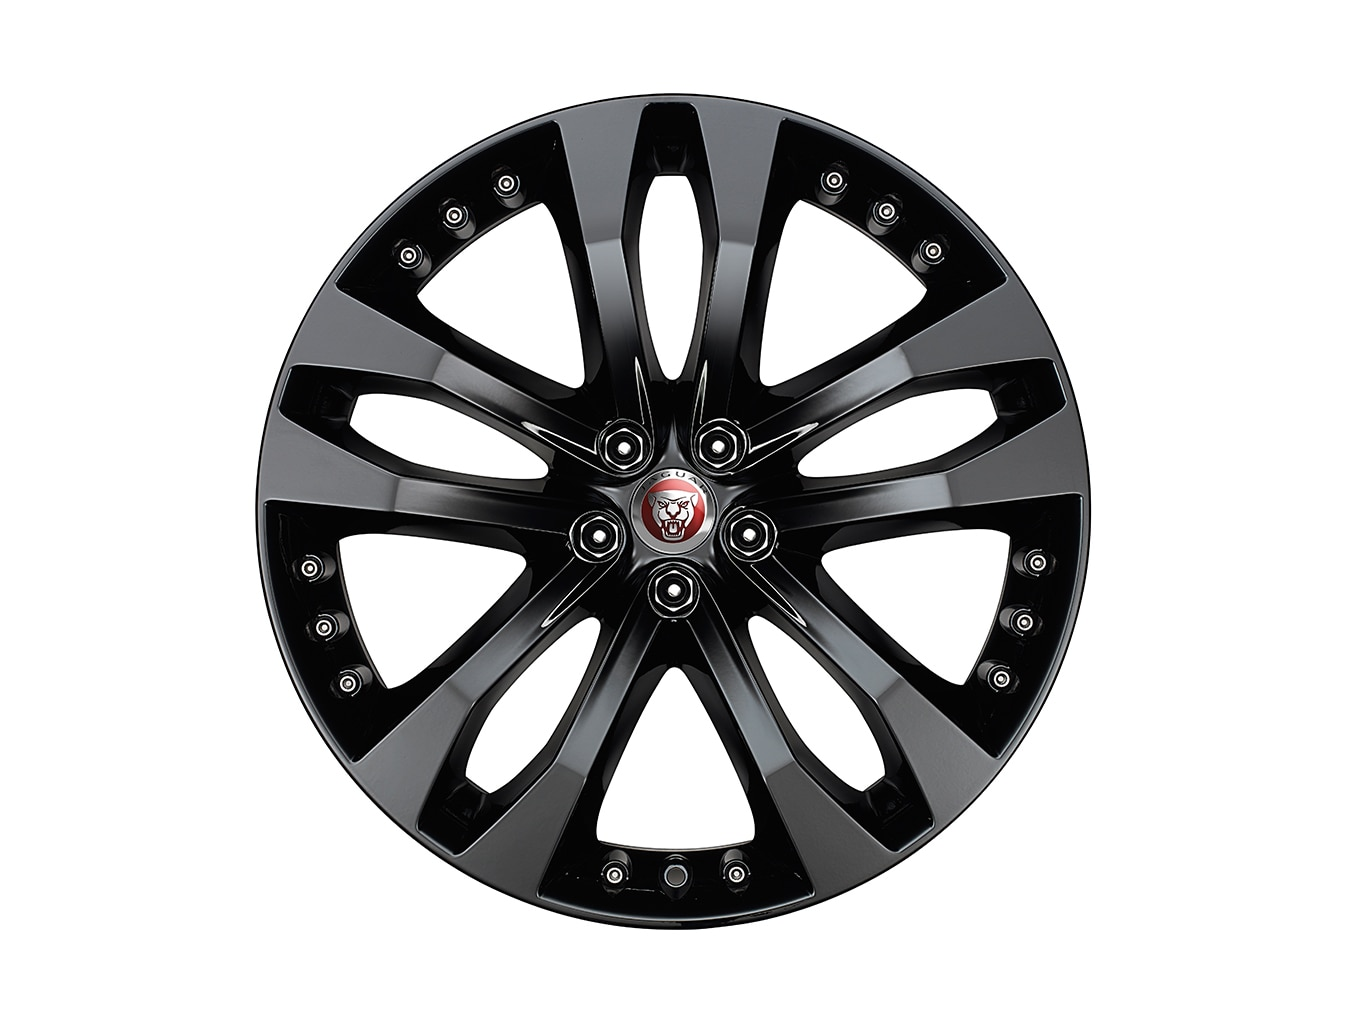 Jaguar Accessories F Type Wheels Amp Wheel Accessories